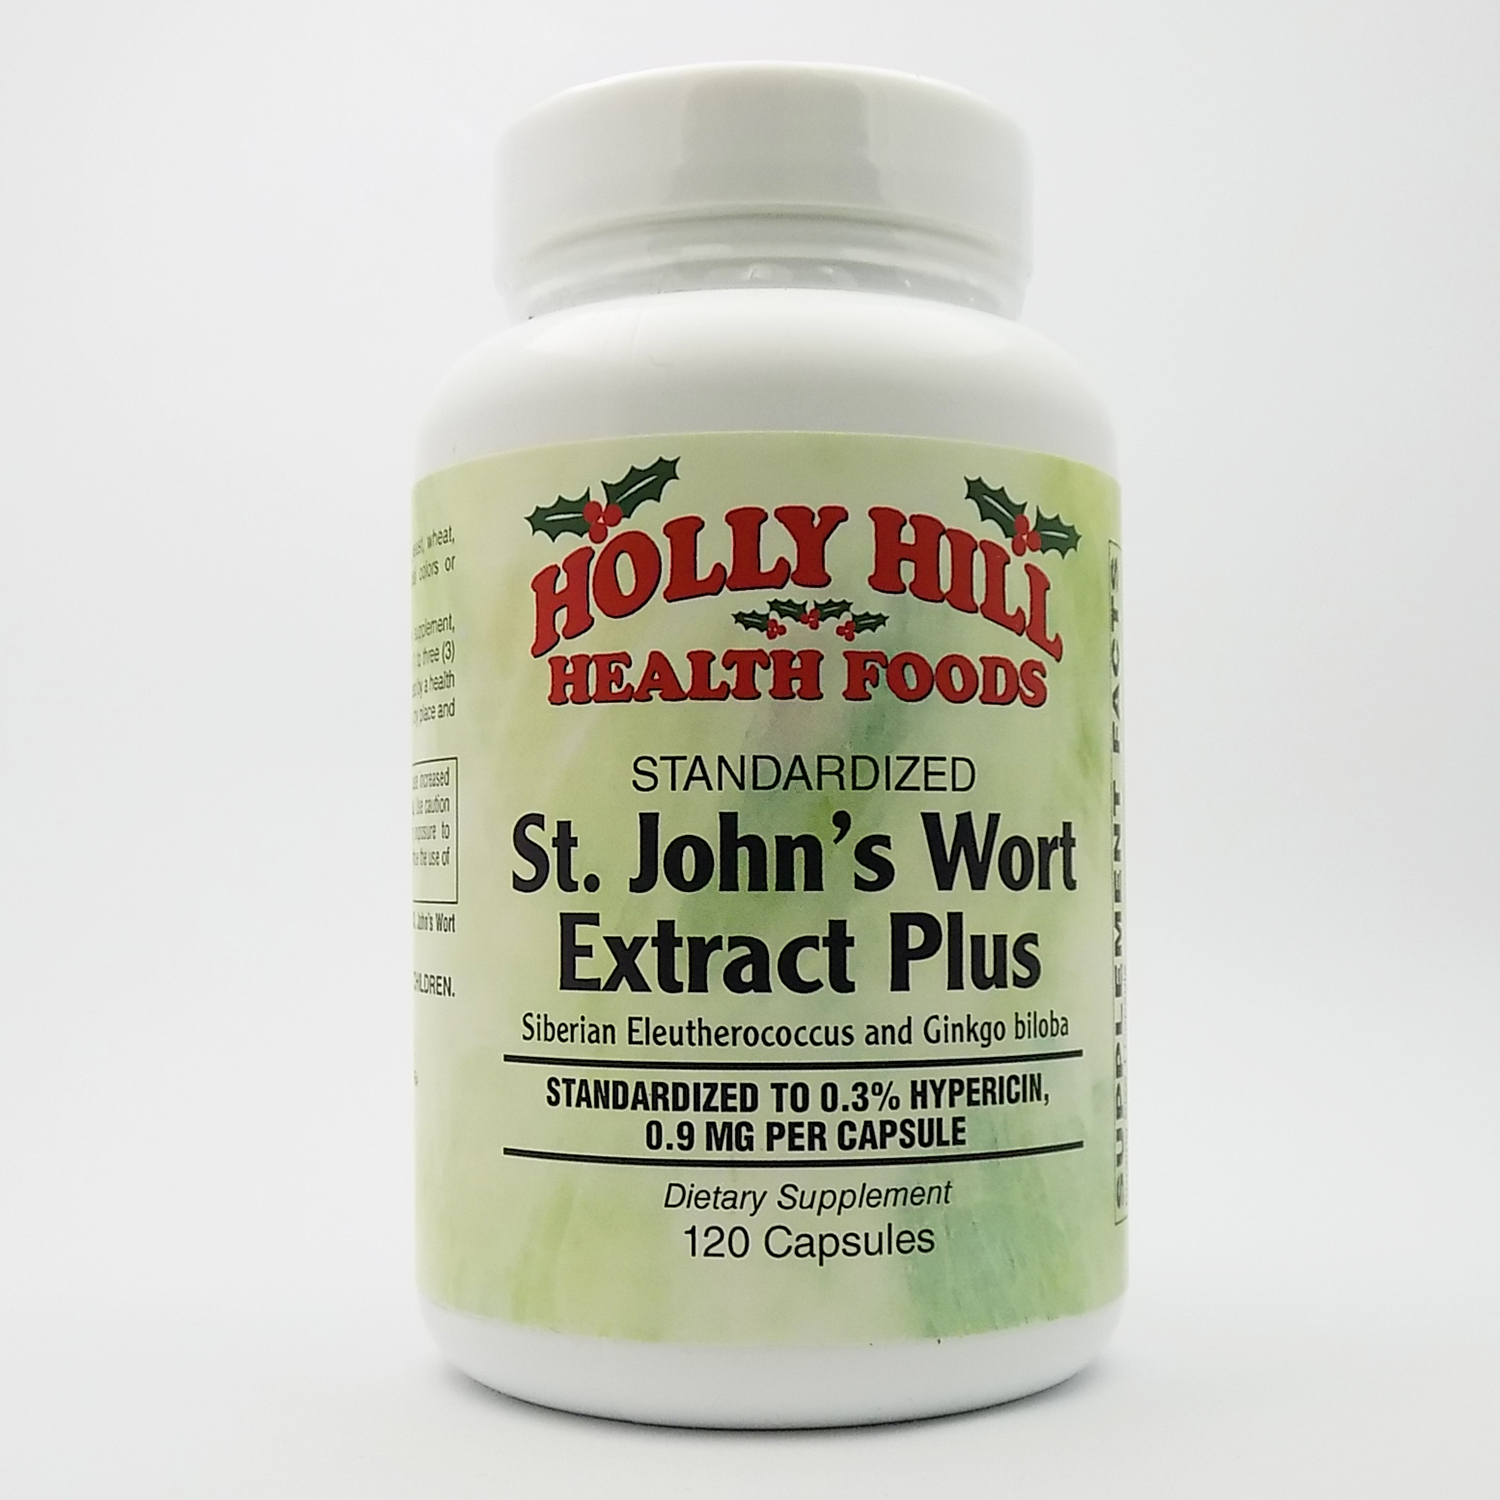 Holly Hill Health Foods, Standardized St. John's Wort Extract Plus, 120 Capsules